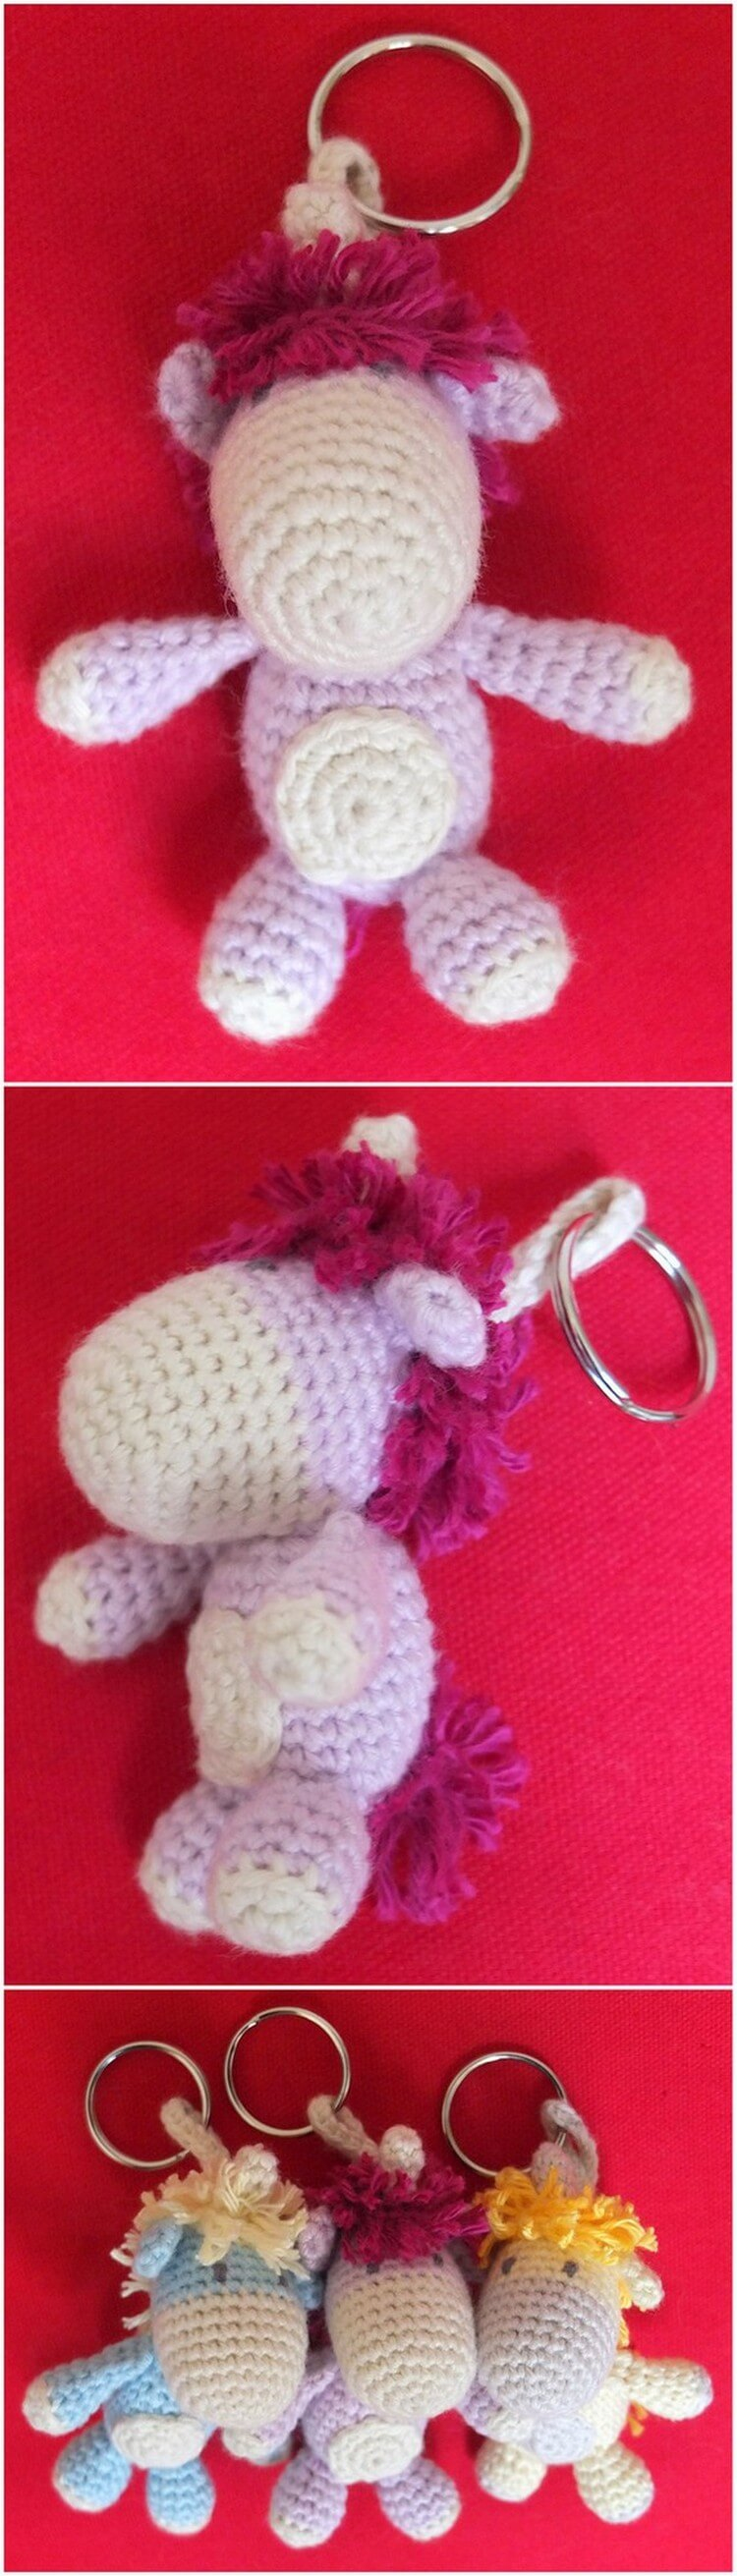 Crochet Unicorn Pattern (16)